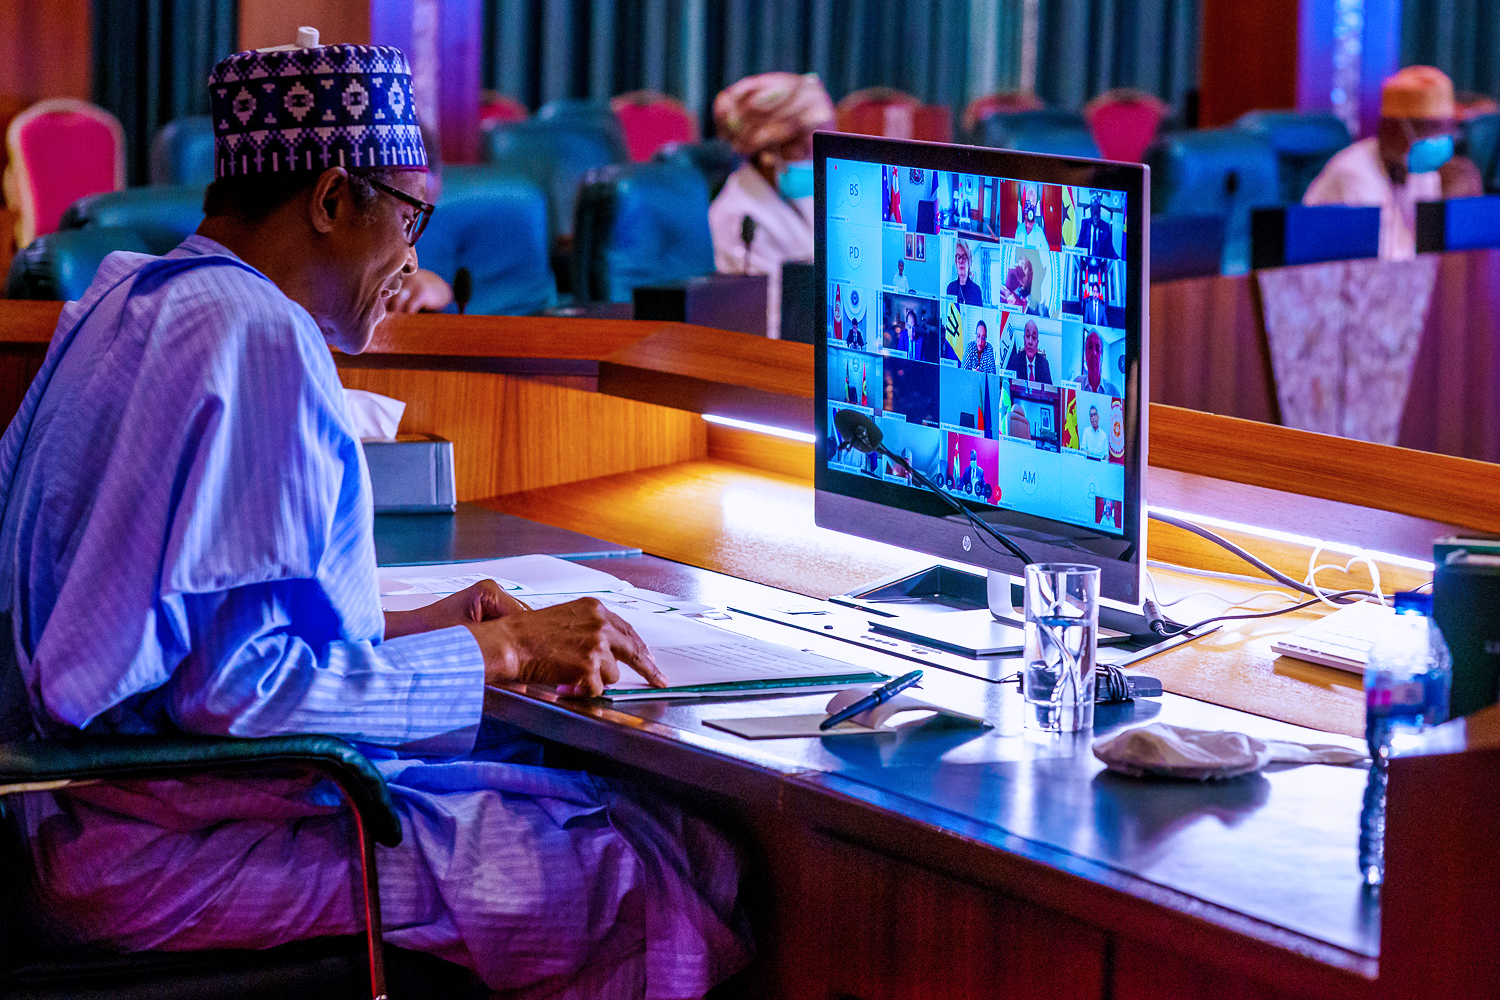 We will lift 100m Nigerians out of poverty in 10 years, Buhari tells UN